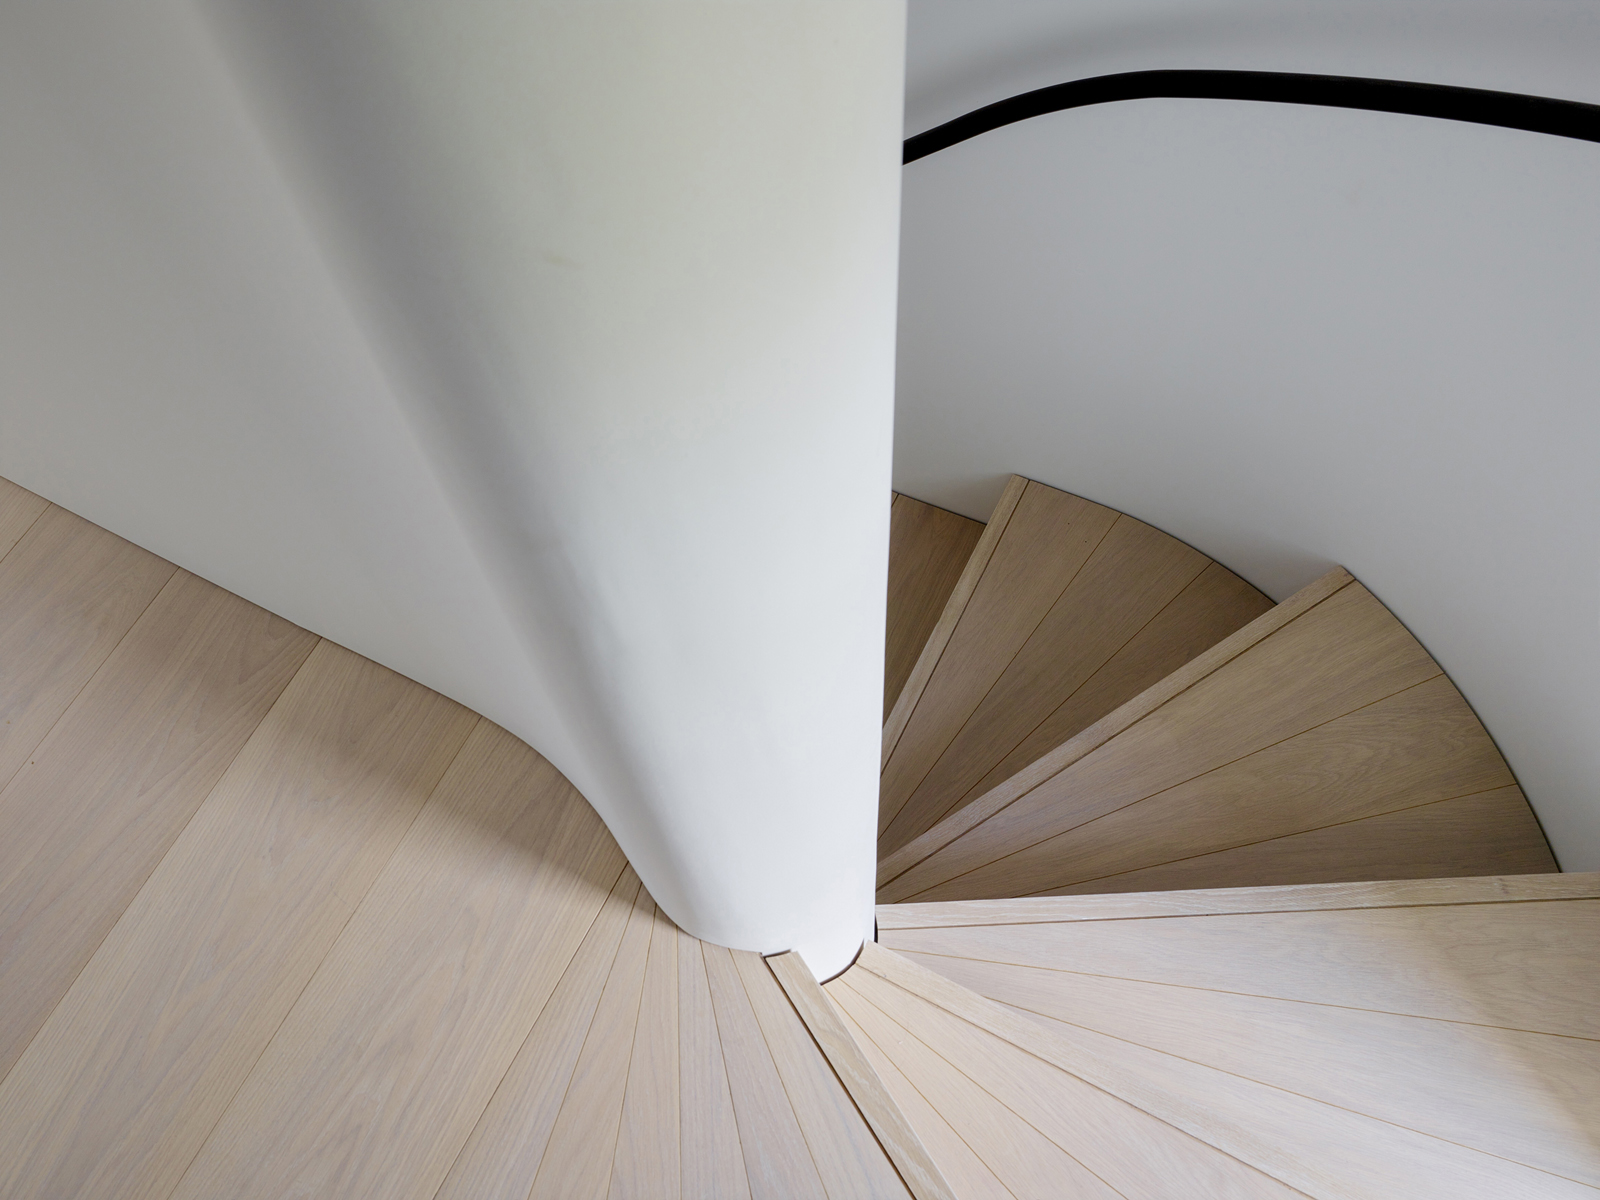 Curved timber stair shadow gap detail